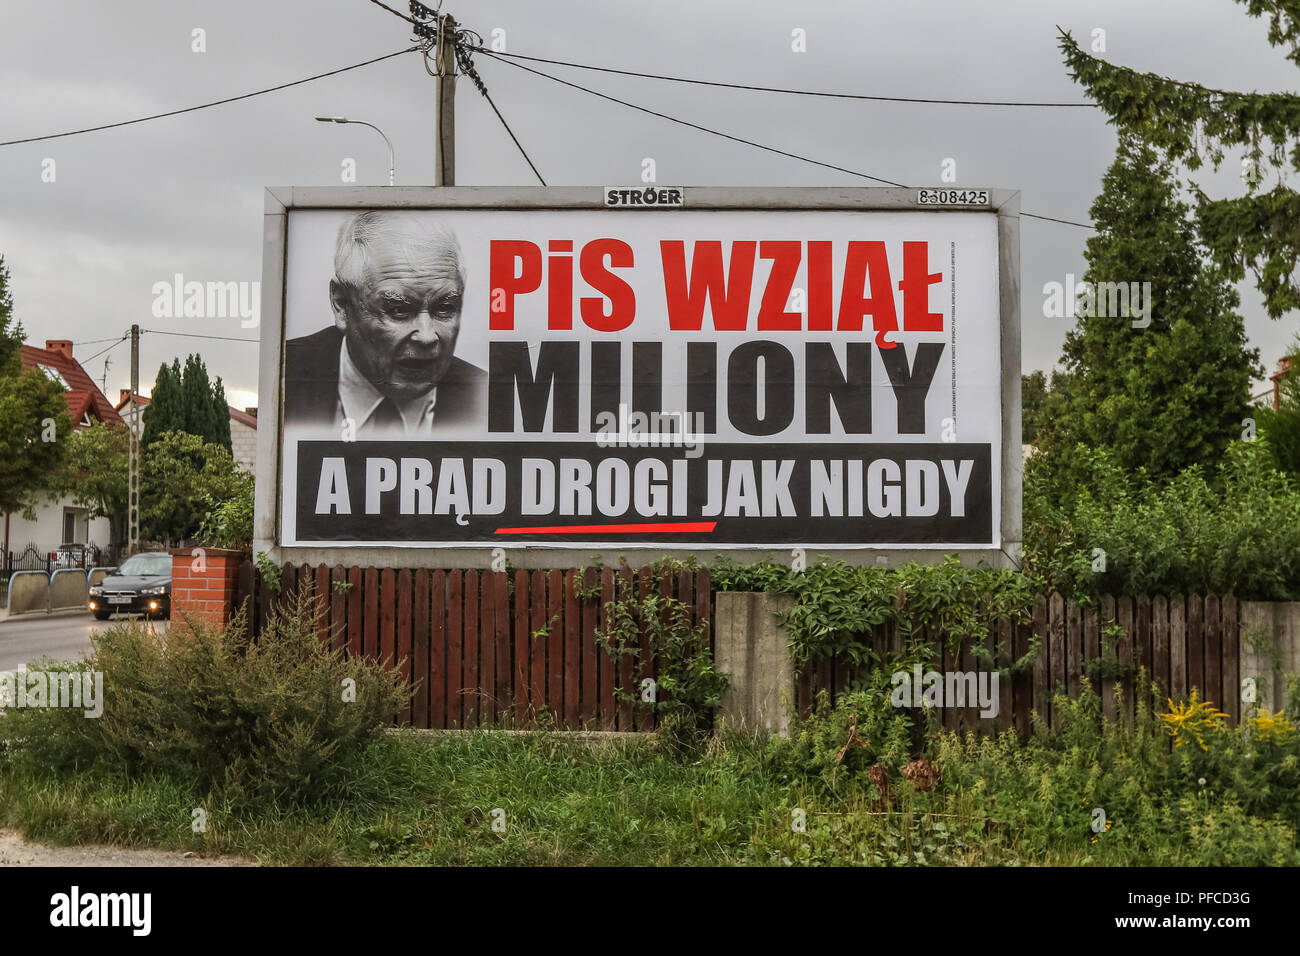 Gdansk, Poland 20th Aug. 2018 Billboard with Jaroslaw Kaczynski face and slogan ' PiS (Law and Justice) took millions, and electricity is expensive as never before ' is seen. Posters financed by the opposition parties displayed across the country refer to giant financial benefits of people connected with the government. Local elections in Poland are scheduled for October 21st. 2018 © Vadim Pacajev / Alamy Live News - Stock Image